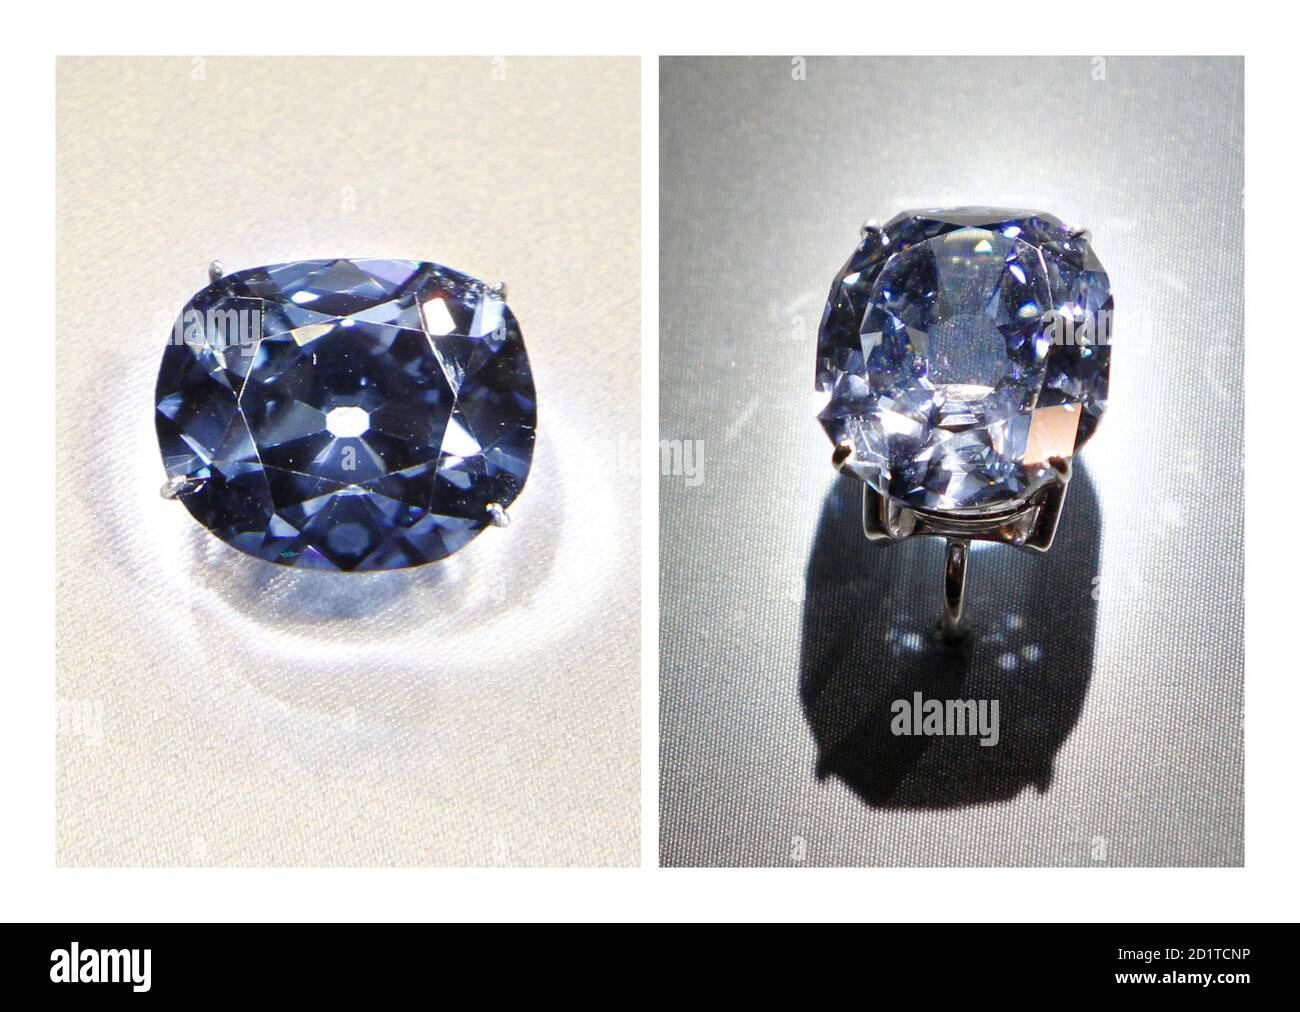 The 45.42 carat Hope Diamond (L) and the 31.06 carat Wittelsbach-Graff Diamond are shown in this combination photograph on display at the Smithsonian National Museum of Natural History in Washington, January 29,